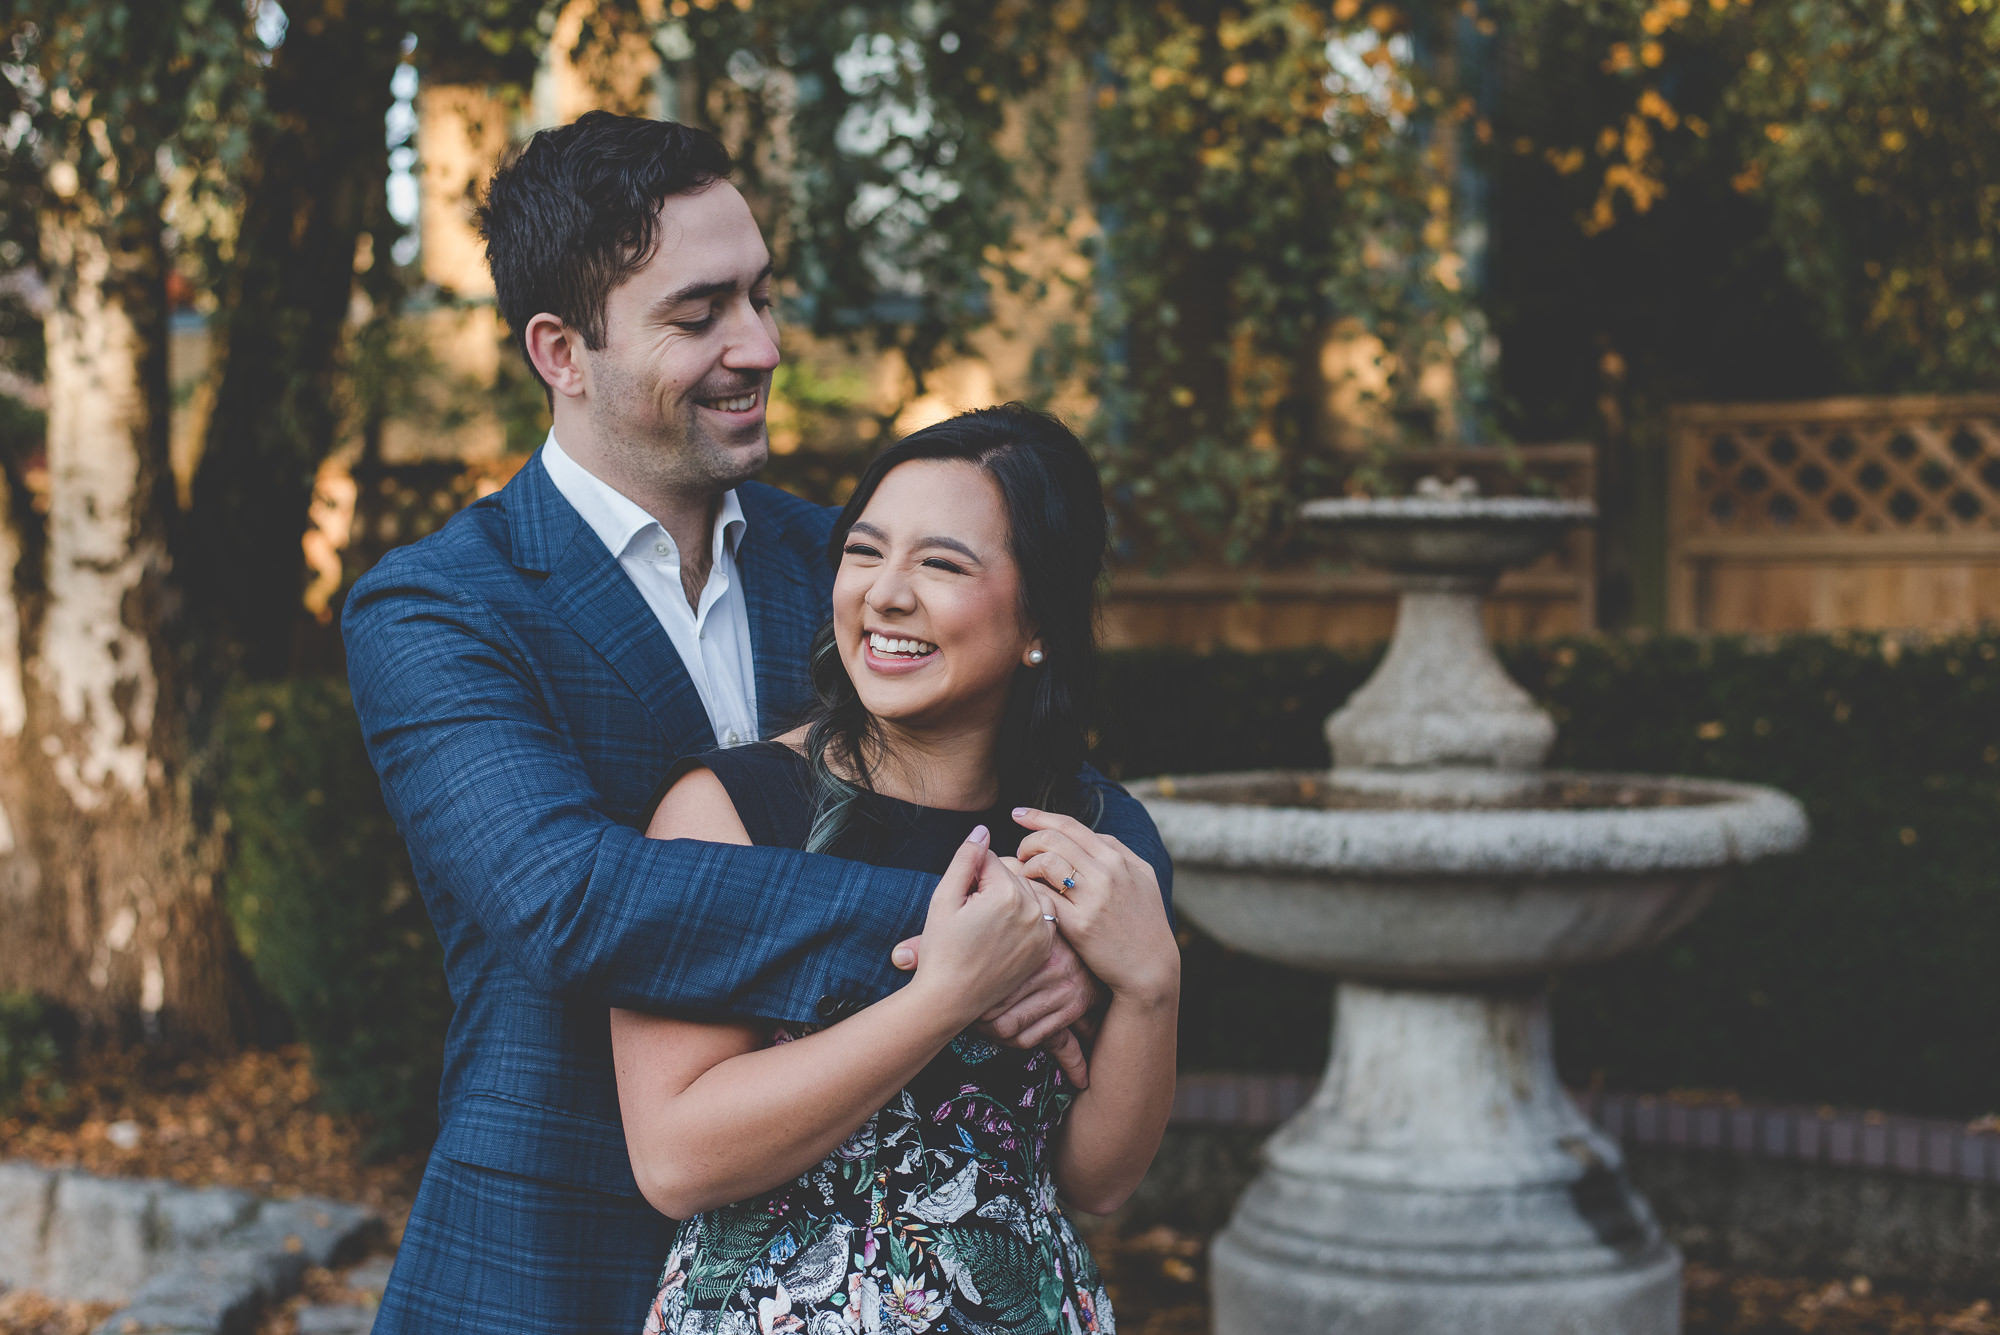 woman laughing with her fiance's arms around her shoulders in front of fountain at Barclay Heritage Square